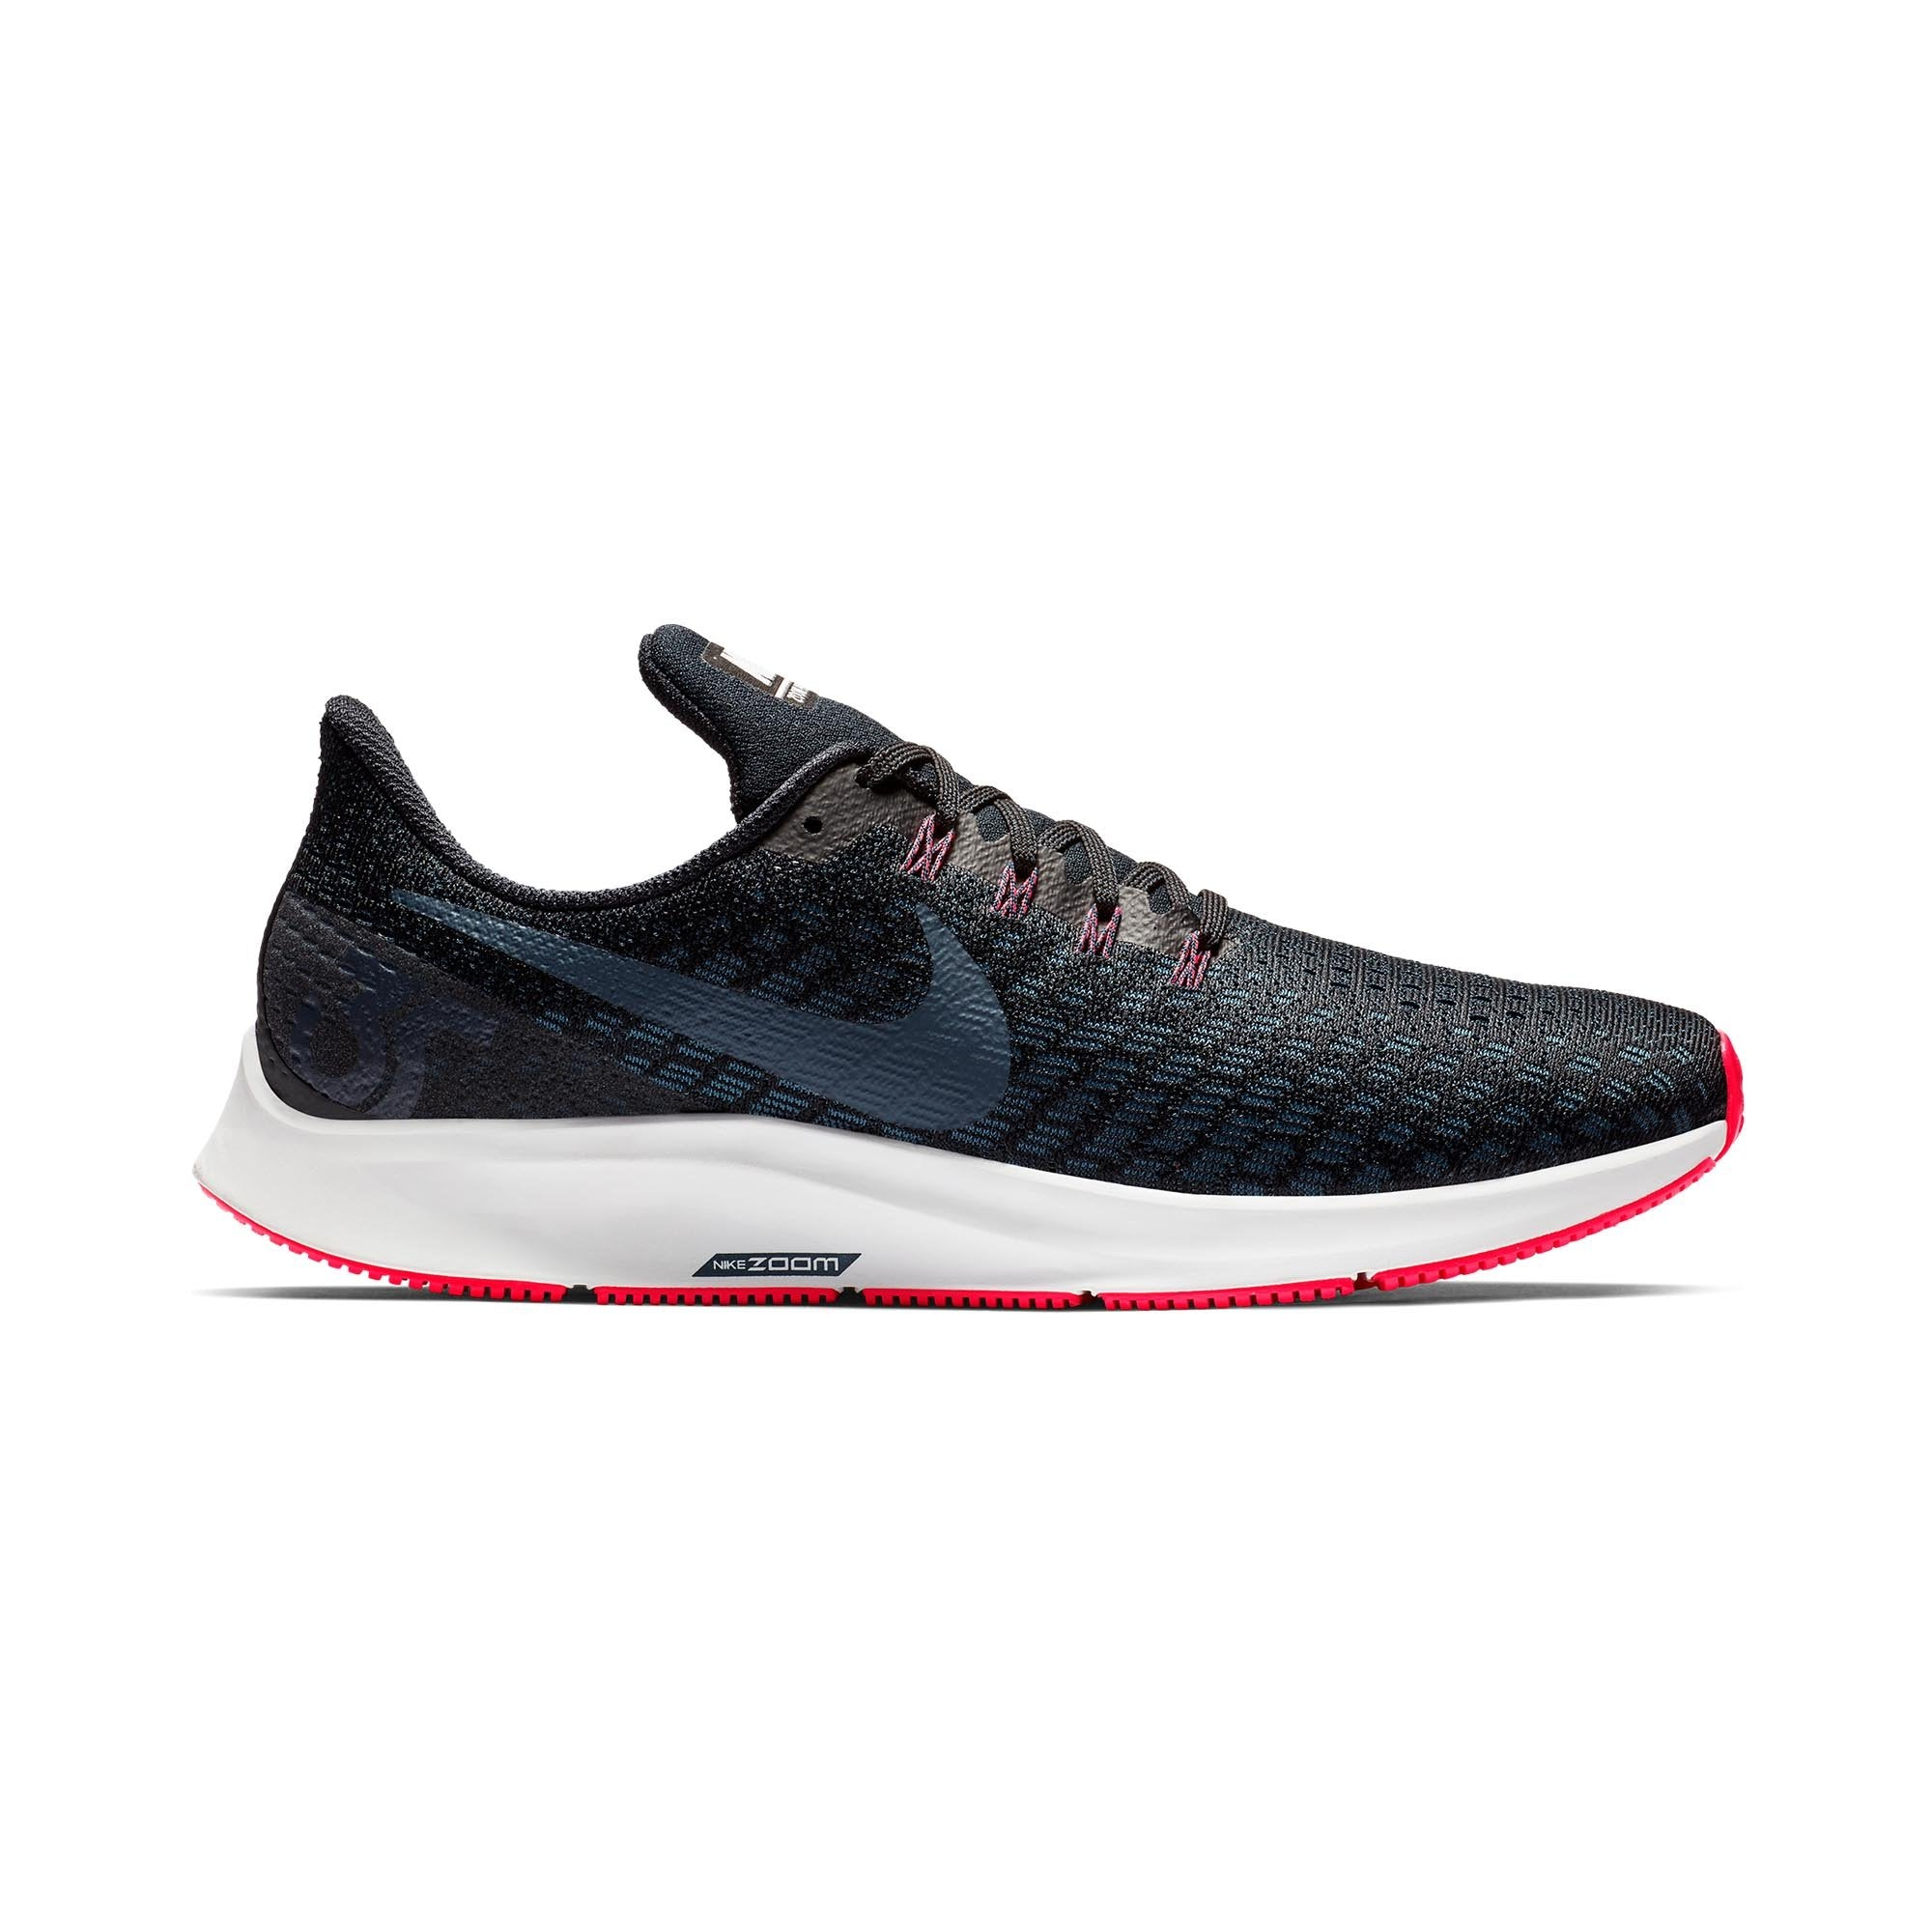 5d3651aa2 Buy Nike Men Air Zoom Pegasus 35 Running Shoes Online in Singapore | Royal  Sporting House